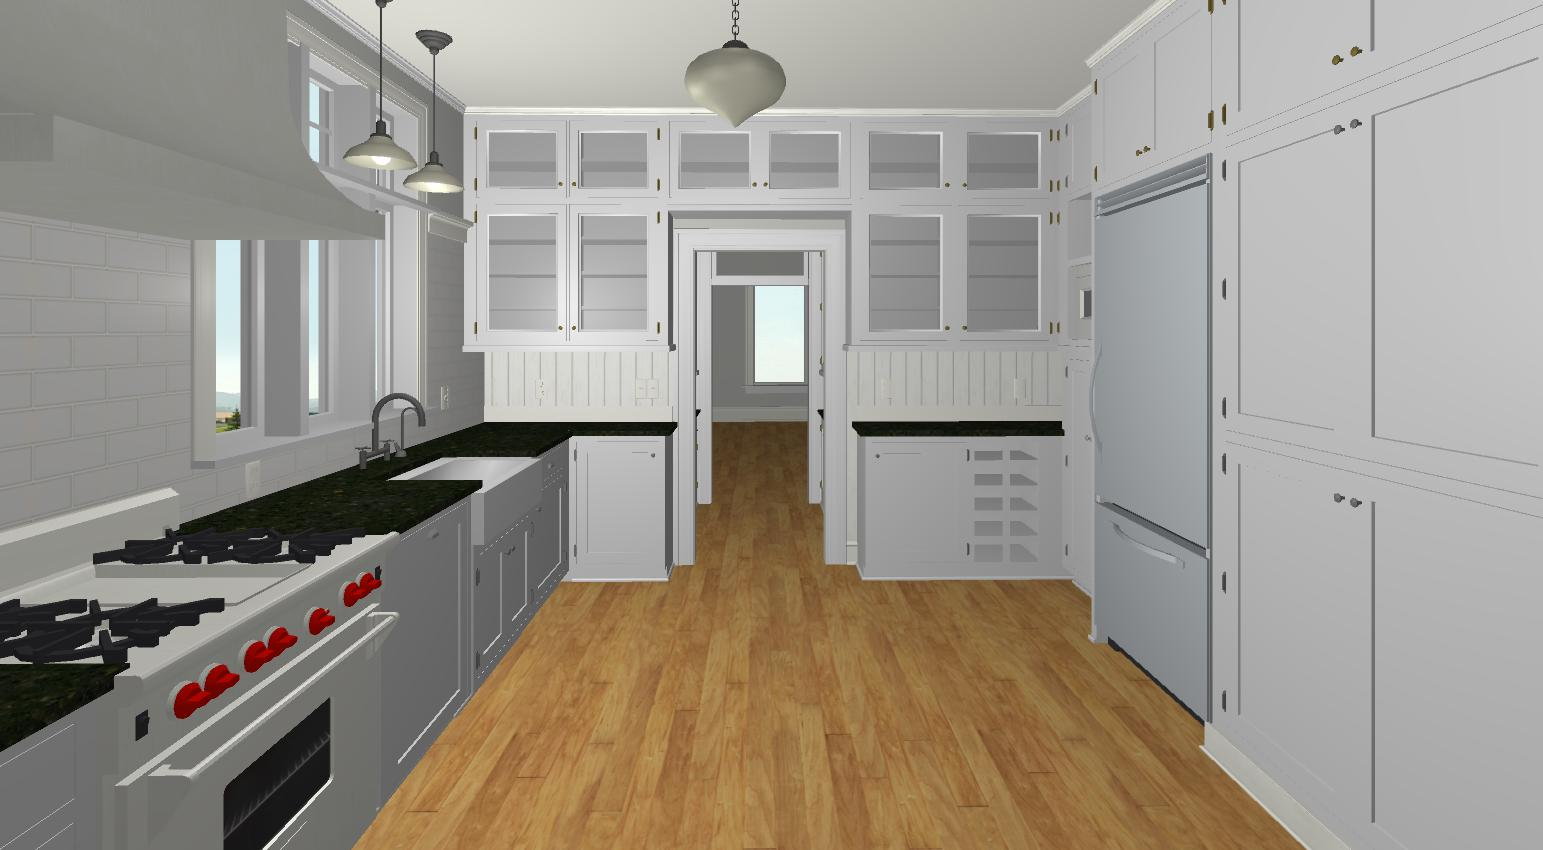 lynnealex-ks-1909-kitchen-rendering-3